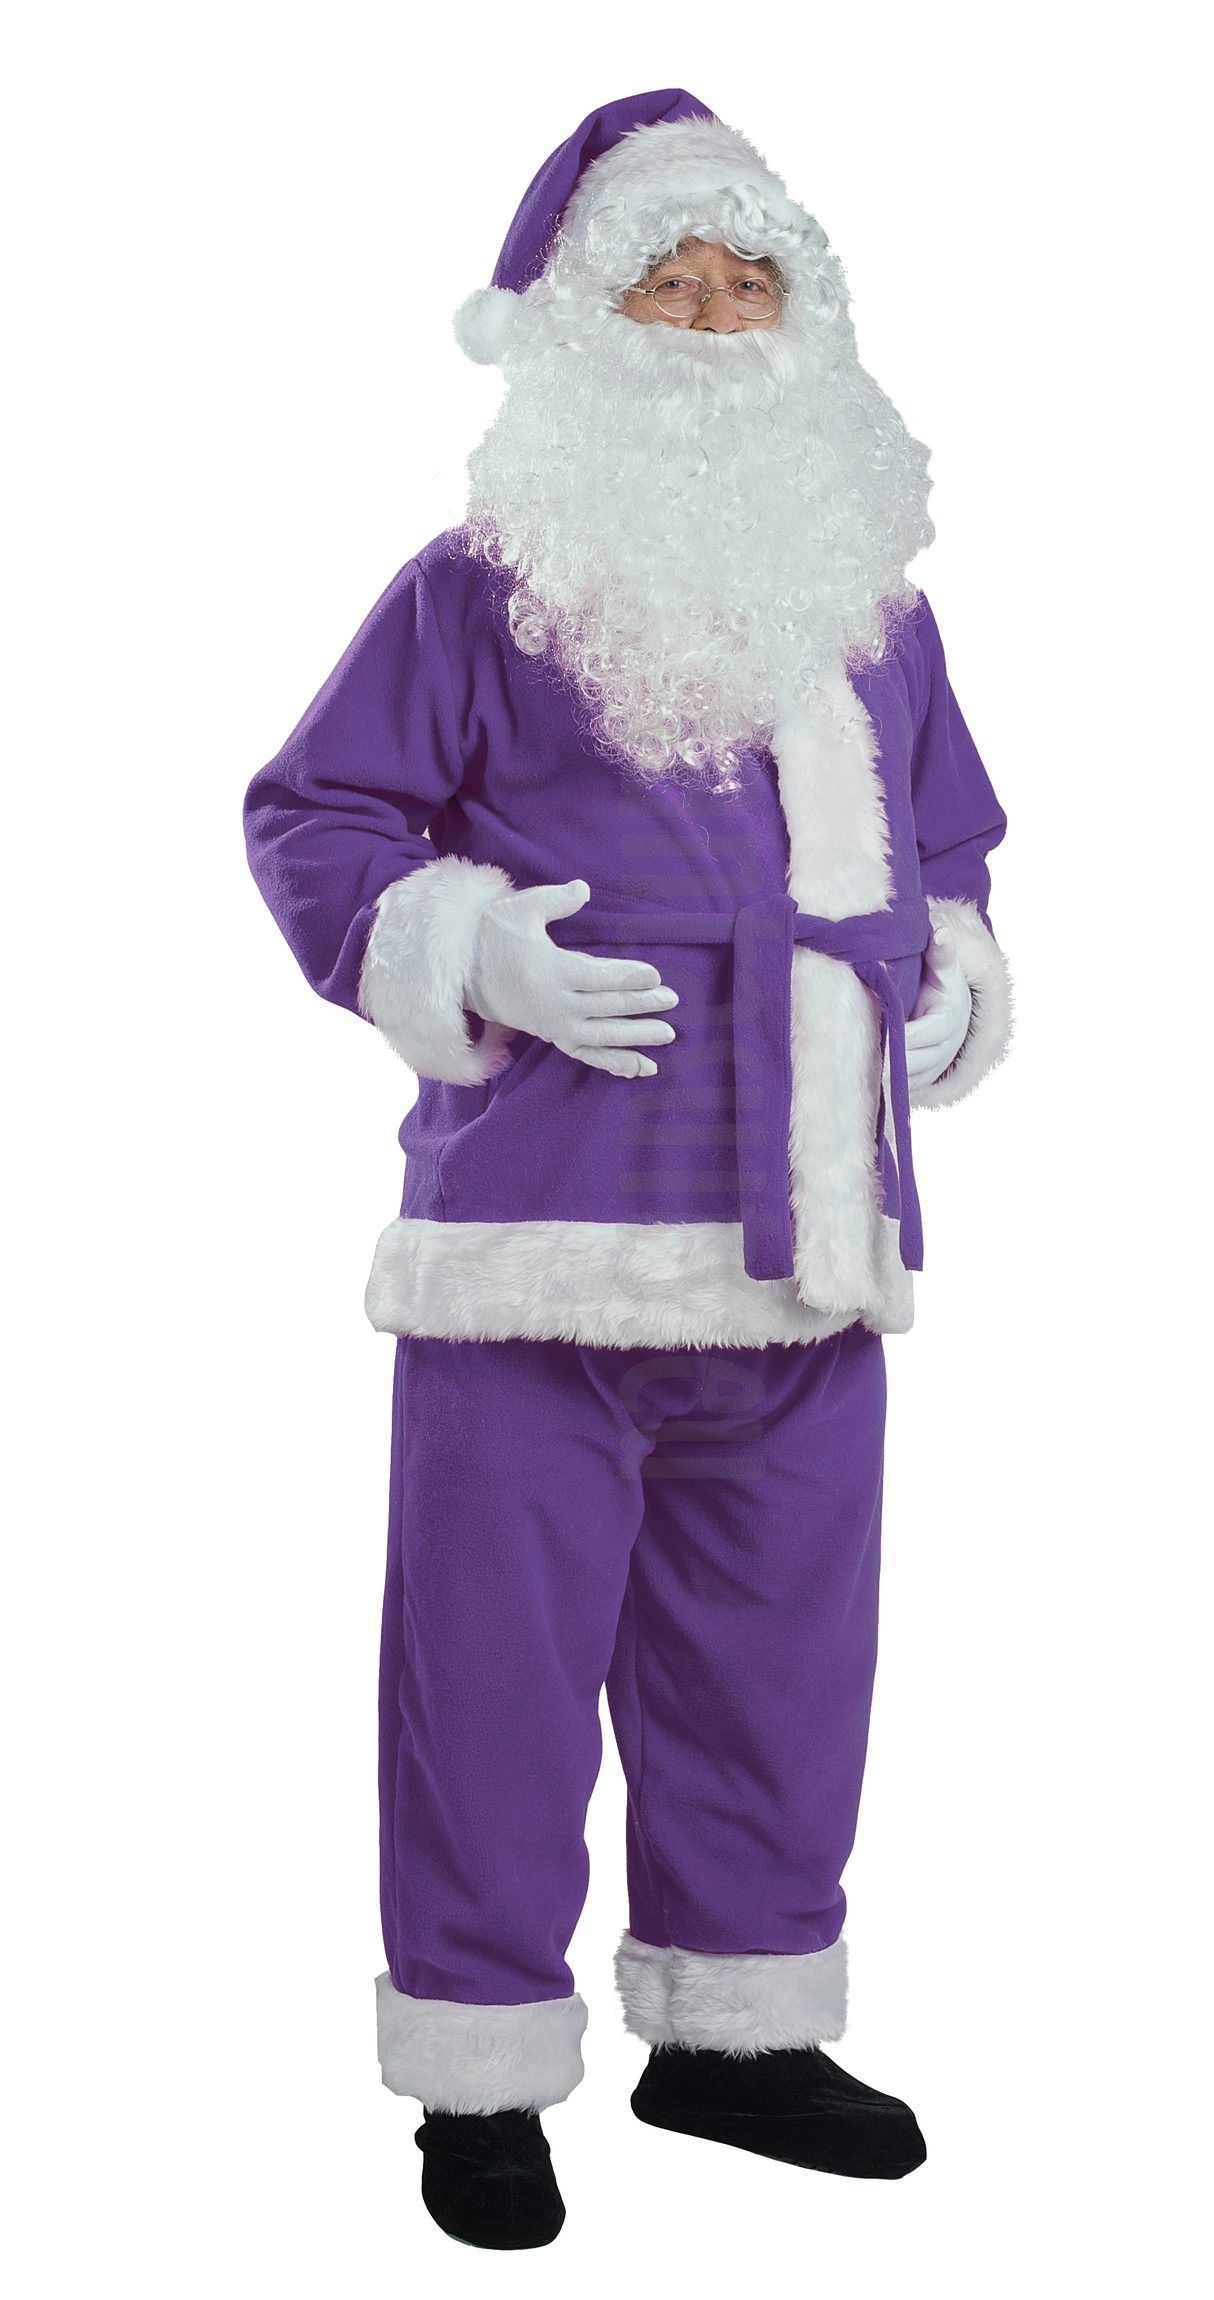 db3aeeeff954b Image result for santa claus purple suit